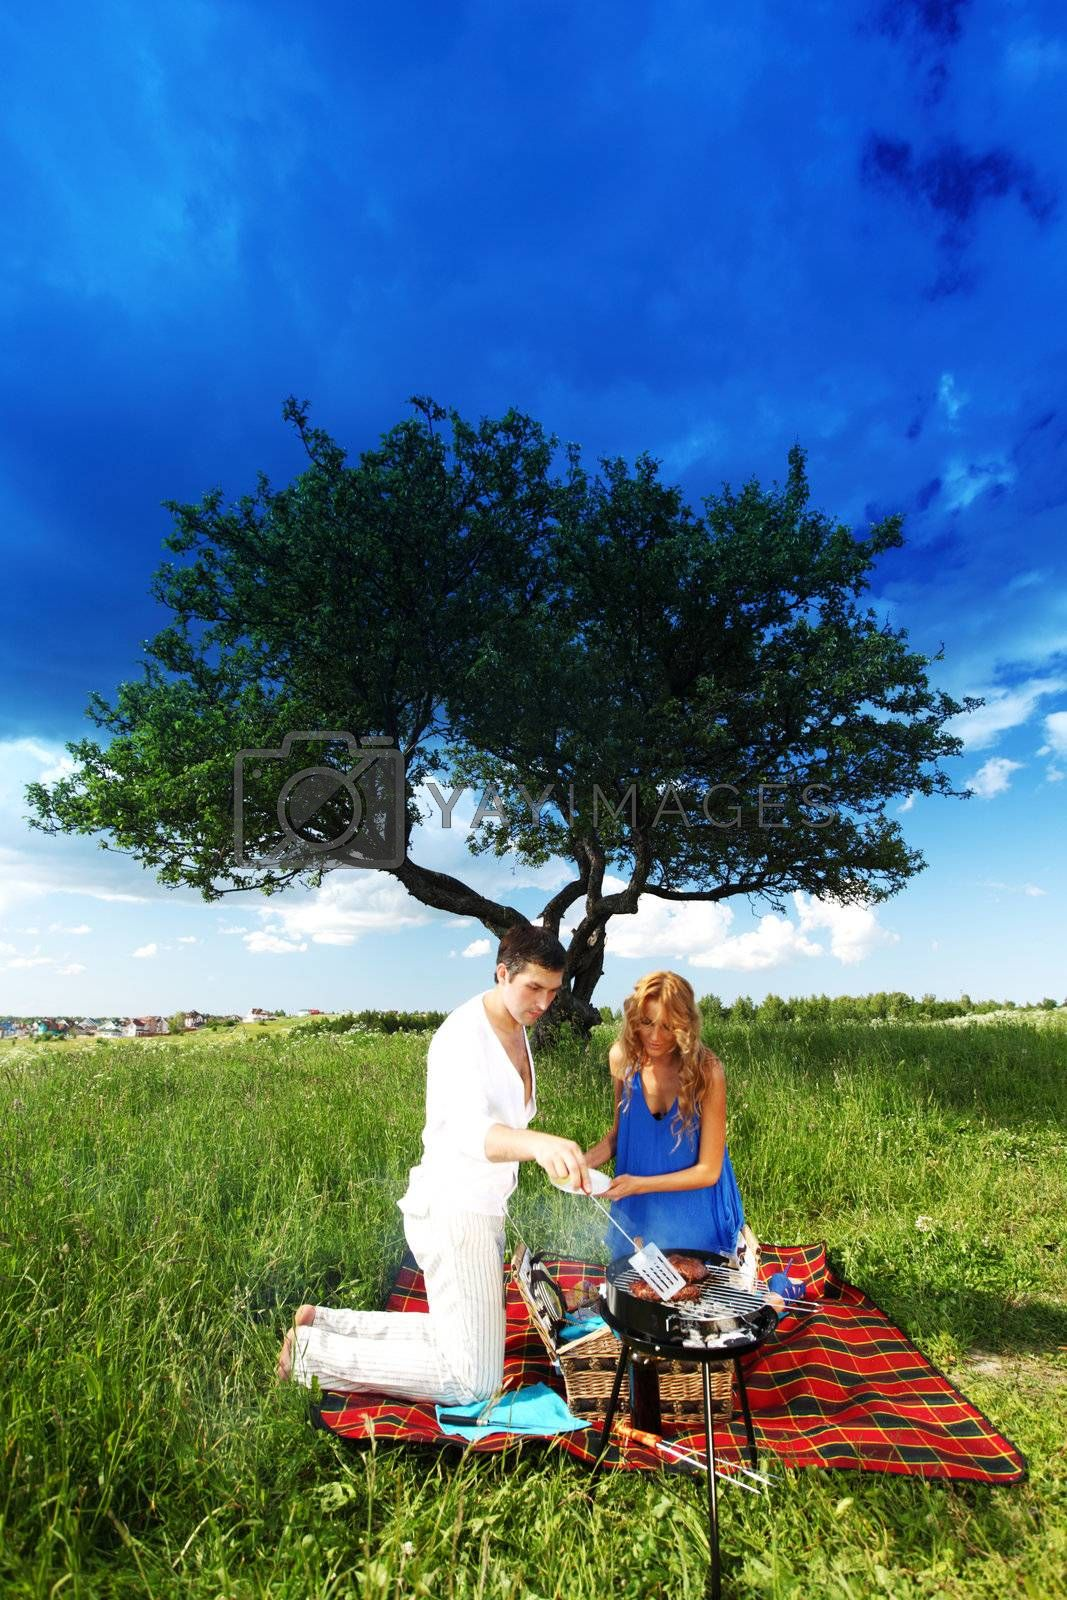 man and woman on picnic in green grass